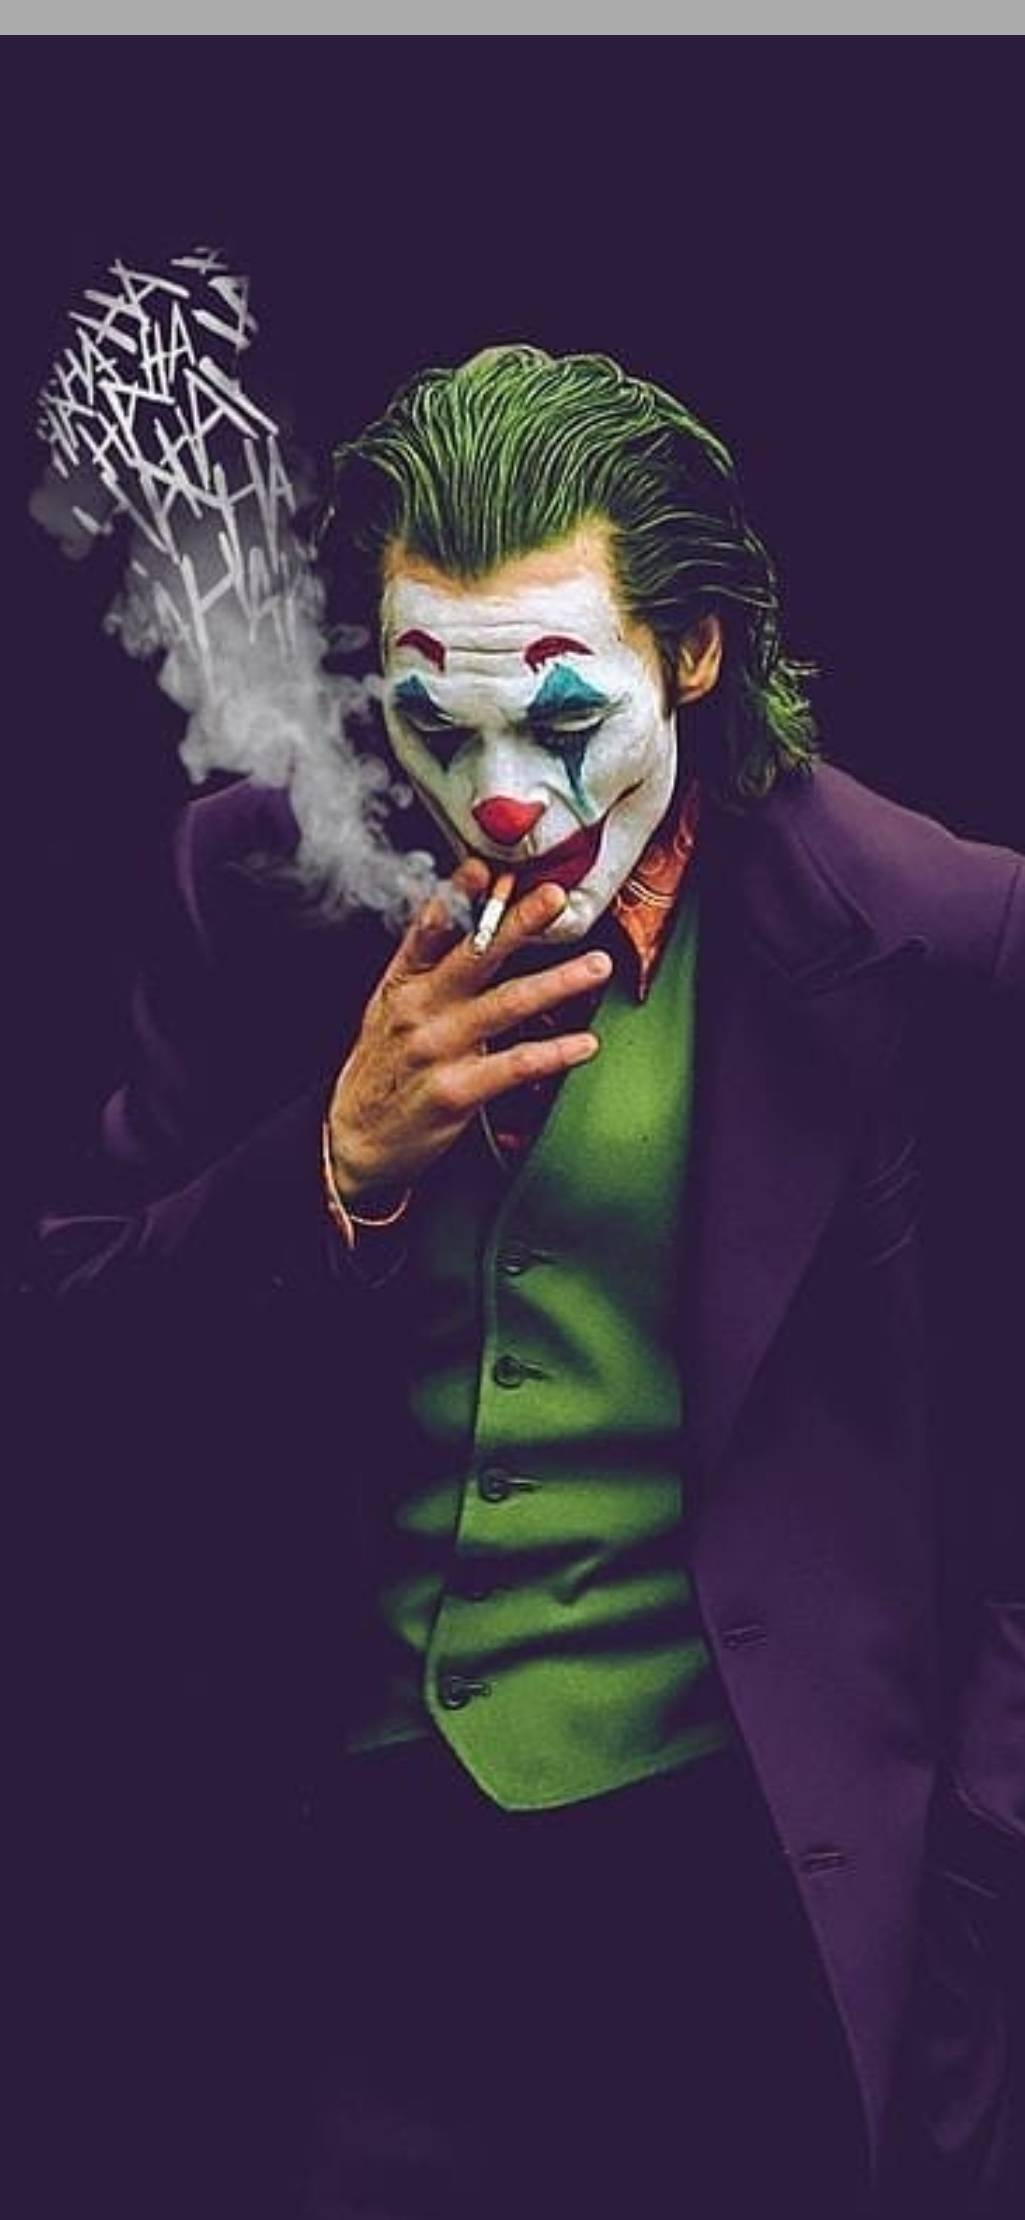 Wallpaper The Joker Posted By Samantha Sellers